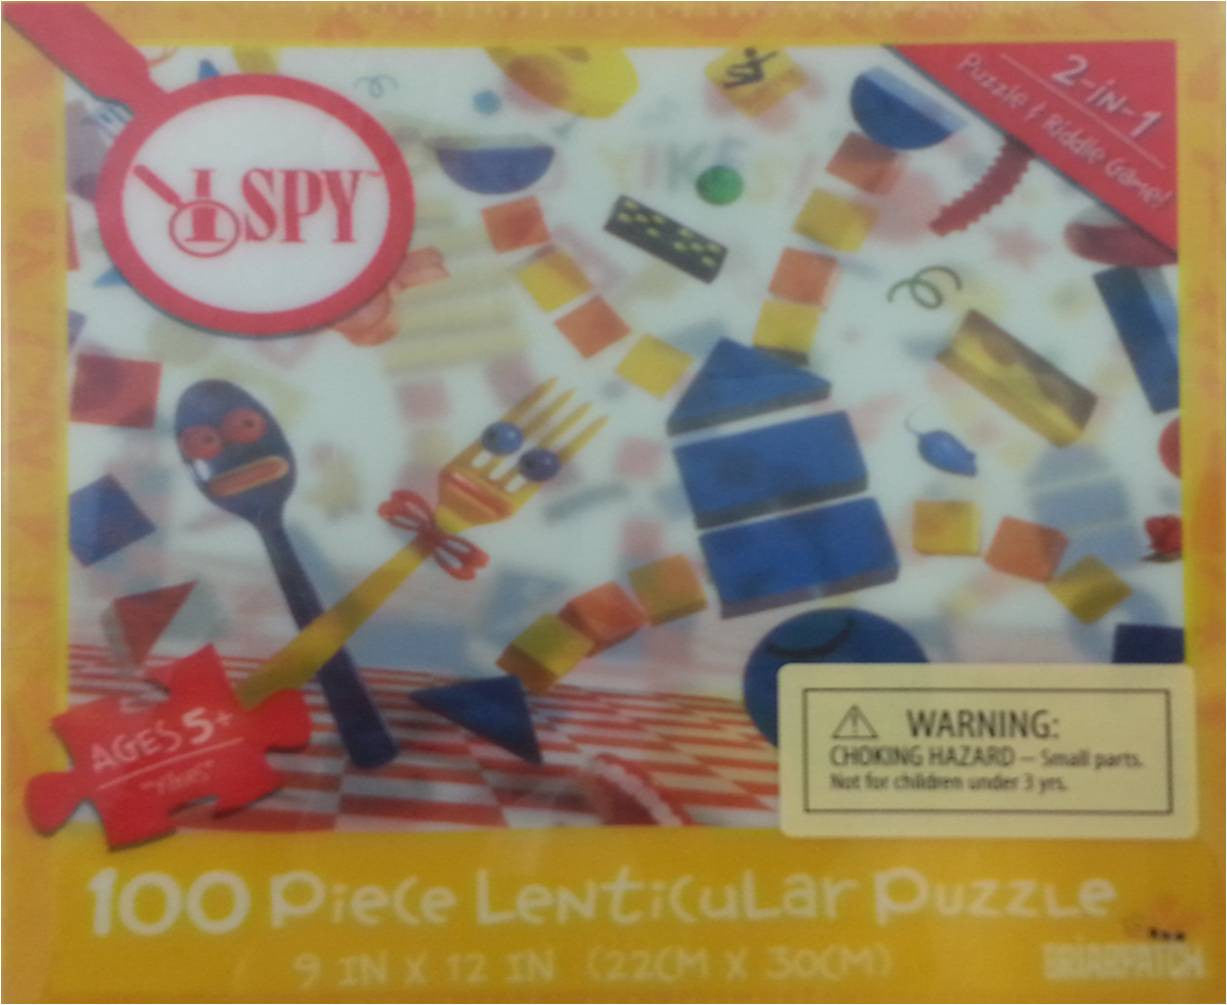 I SPY Yikes - 3D Lenticular Puzzle & Riddle Game - 100 Pieces - Off The Wall Toys and Gifts